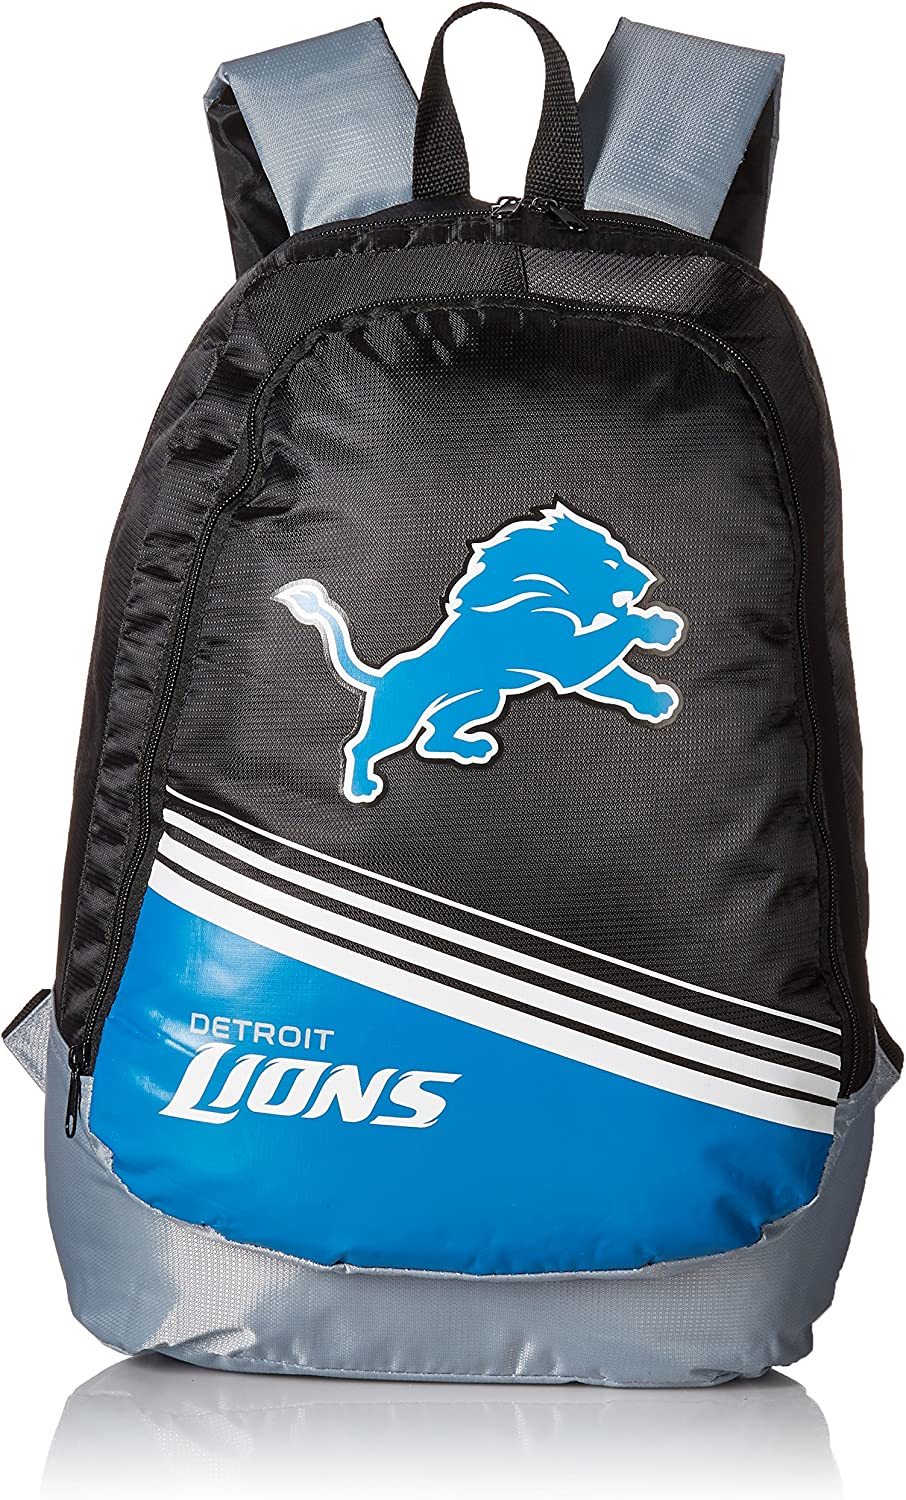 Detroit Lions 2015 Backpack Stripe Core Ranking Long-awaited TOP7